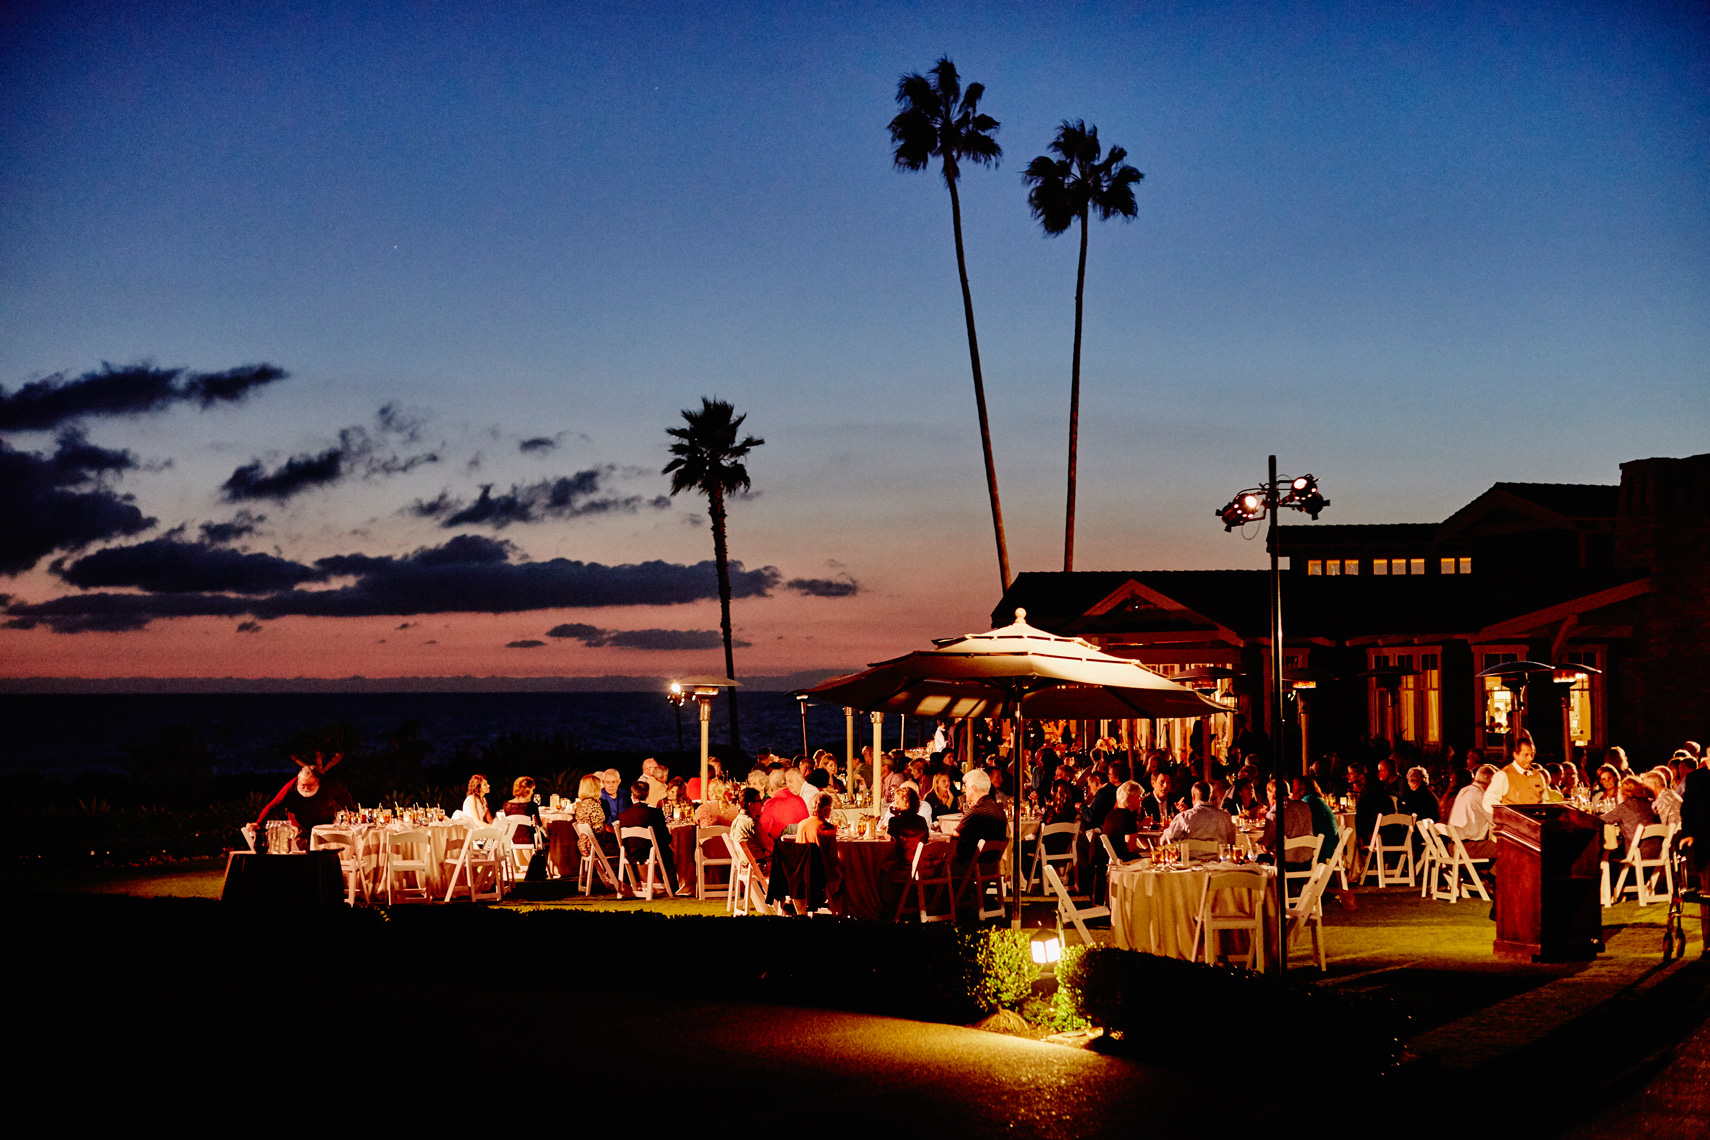 Lighting for a corporate event at Montage Resort, Laguna Beach at dusk